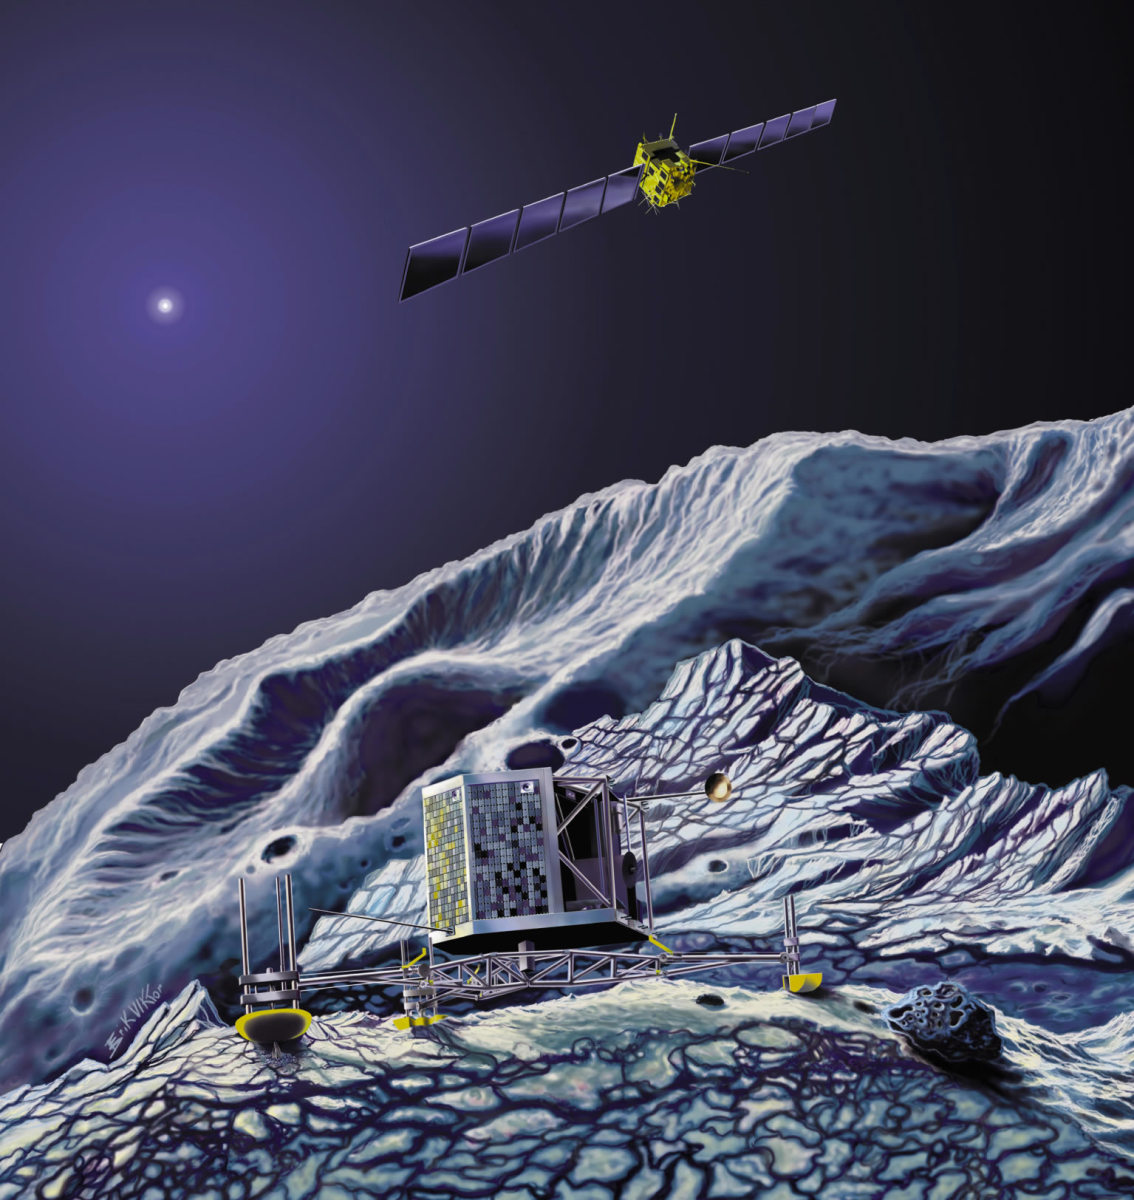 What Was The Rosetta Space Craft? The Mission to Comet 67P/Churyumov-Gerasimenko